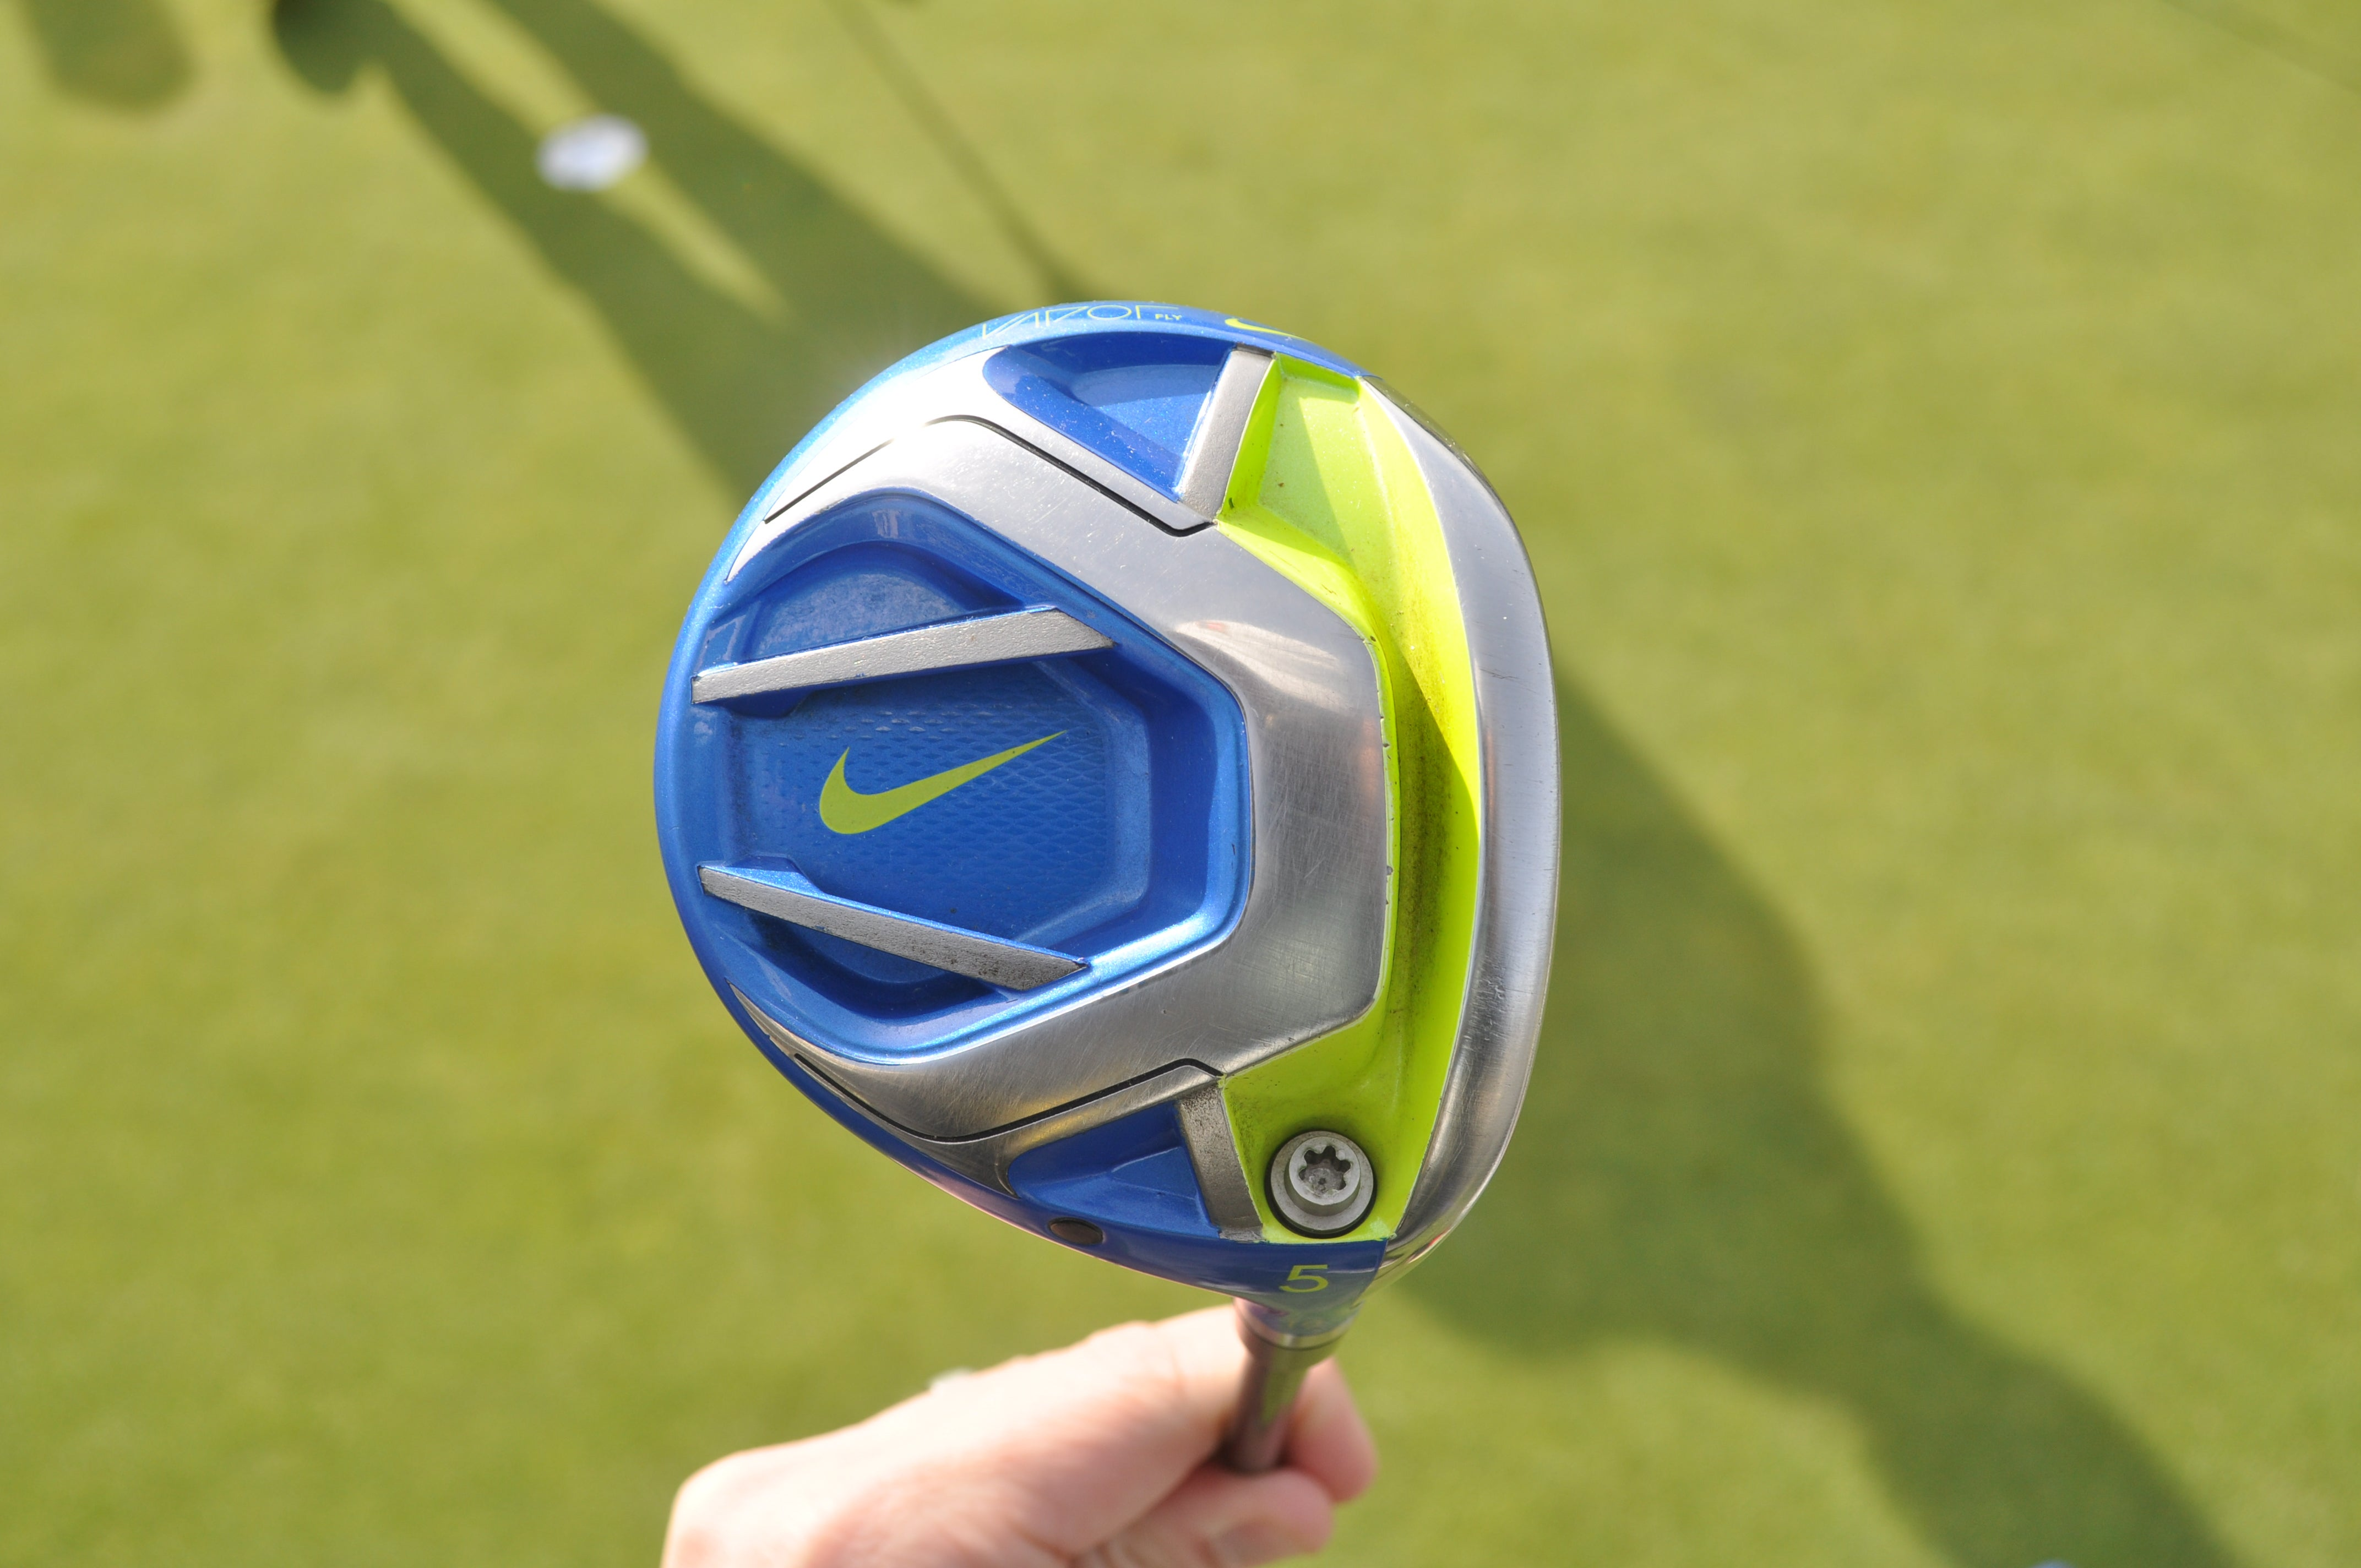 Tommy Fleetwood's lone Nike club left in the bag is a Vapor Fly 5-wood.